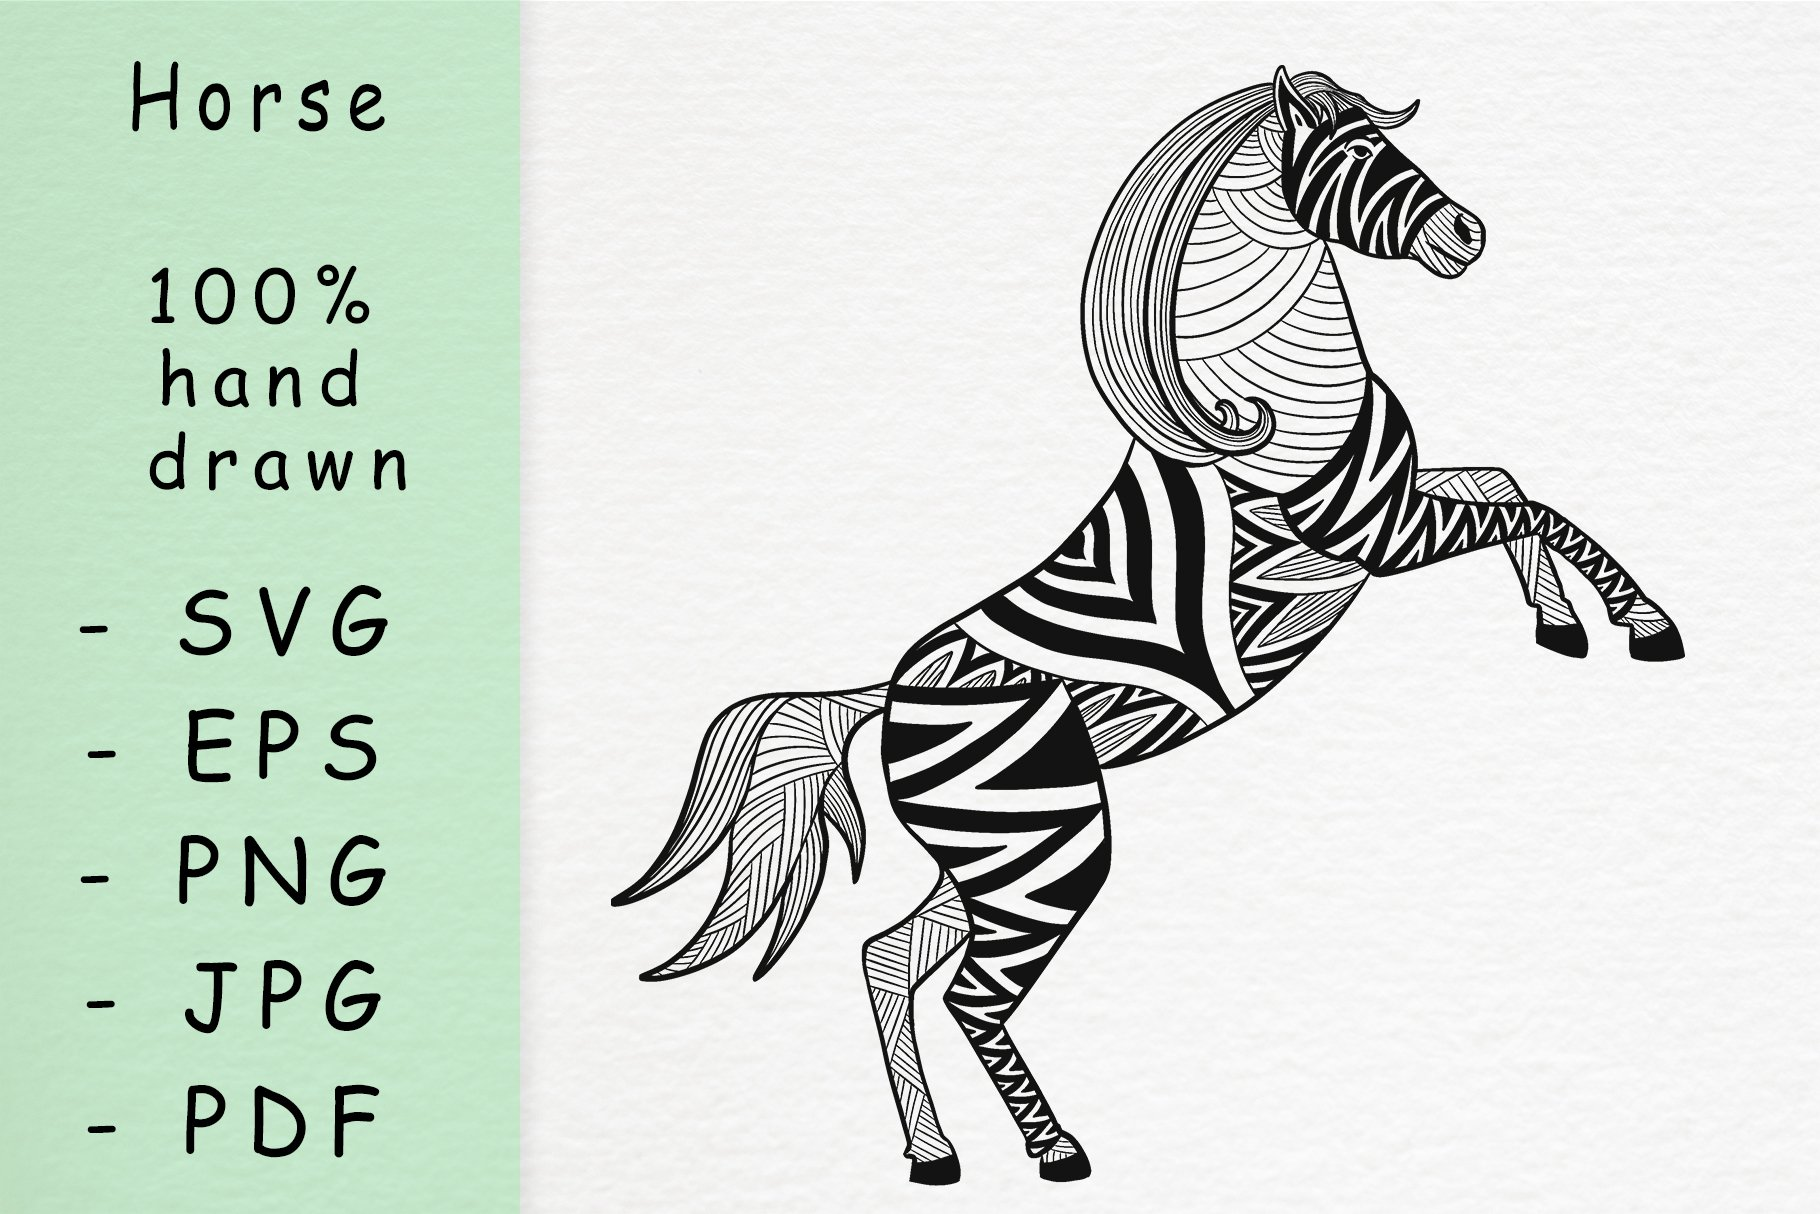 Hand drawn horse with patterns example image 1